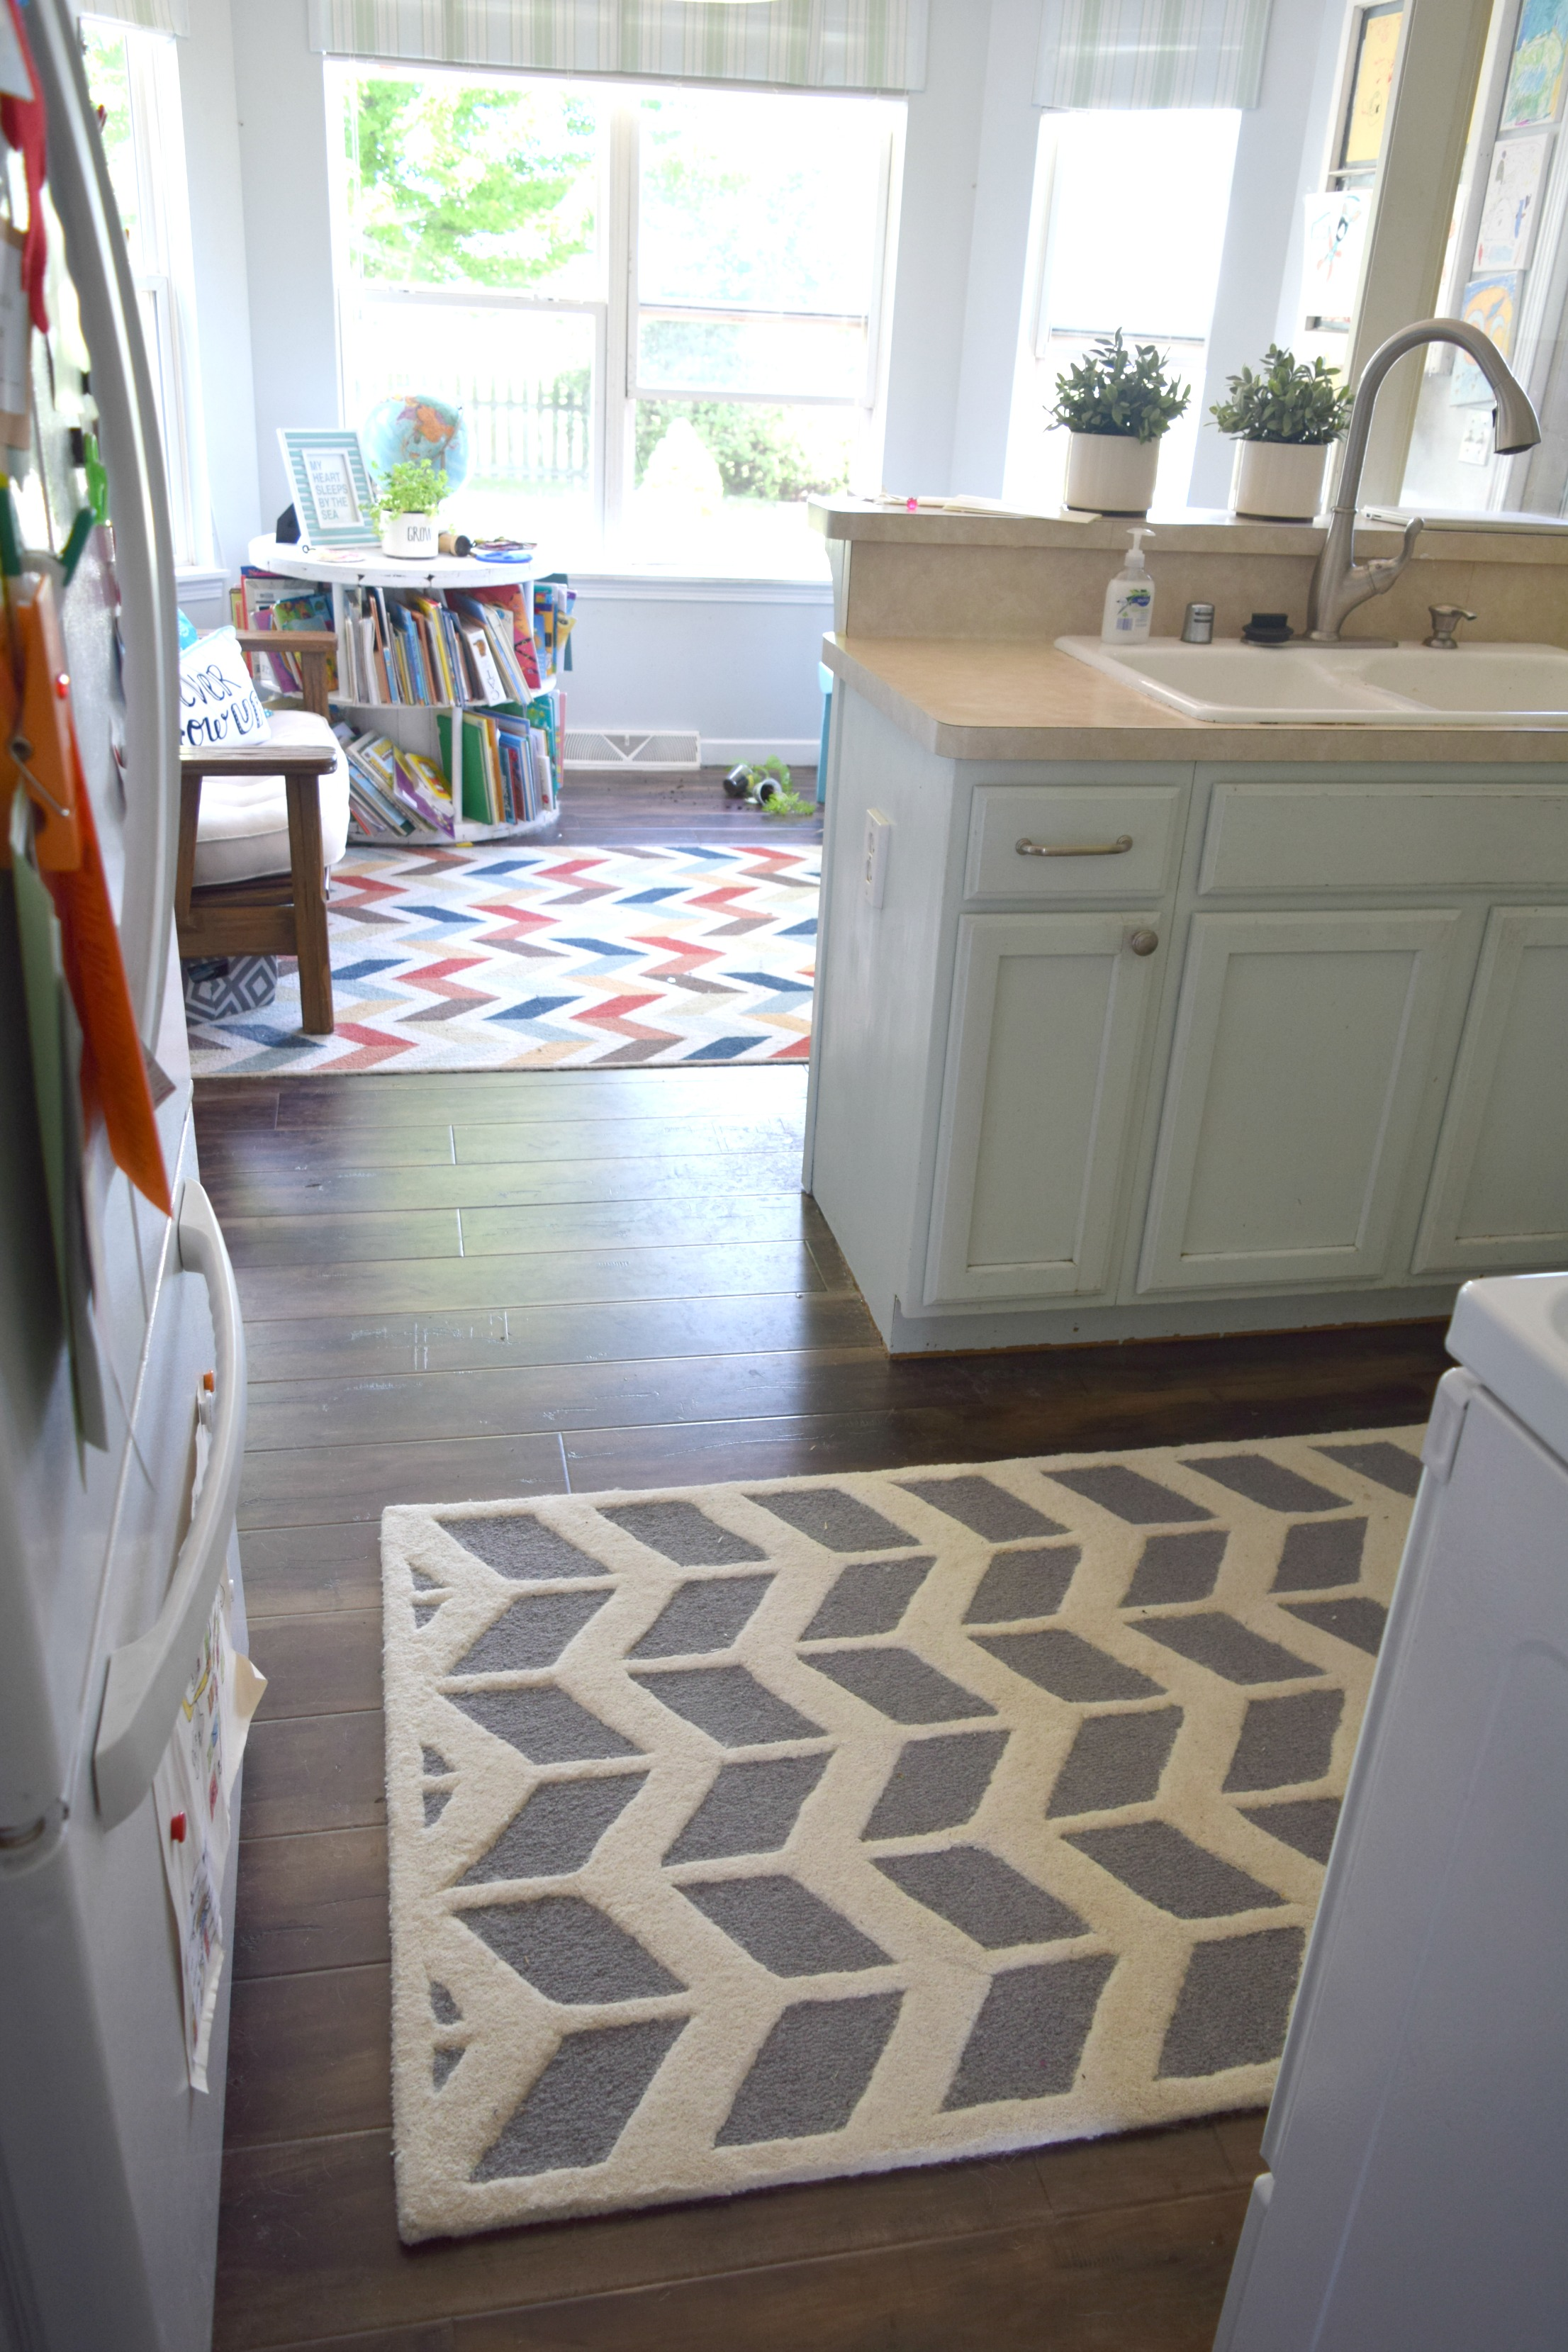 New rugs for the home a small change makes a big difference • Our